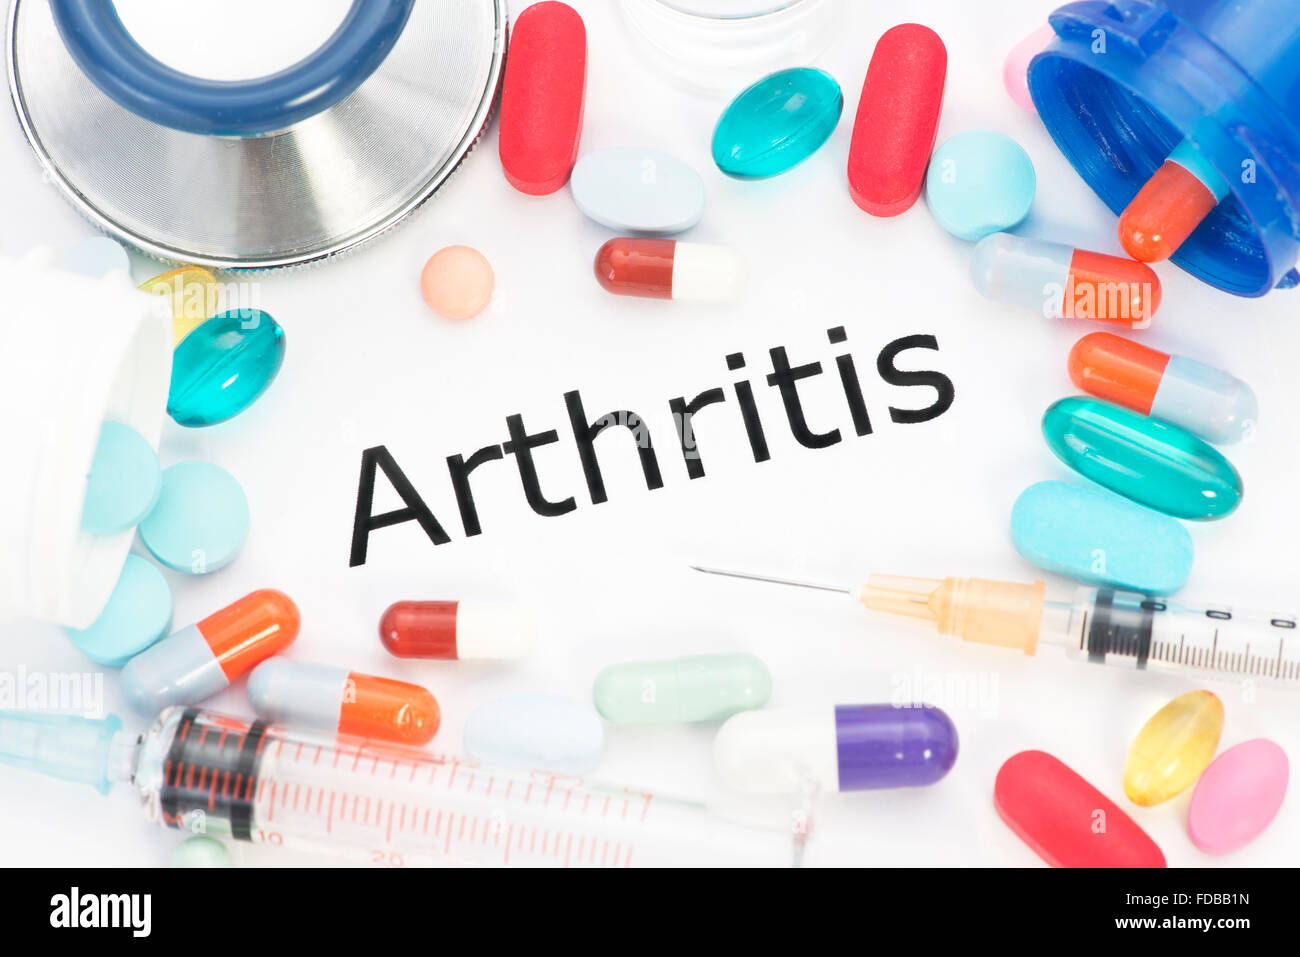 Arthritis concept photo with medication. - Stock Image